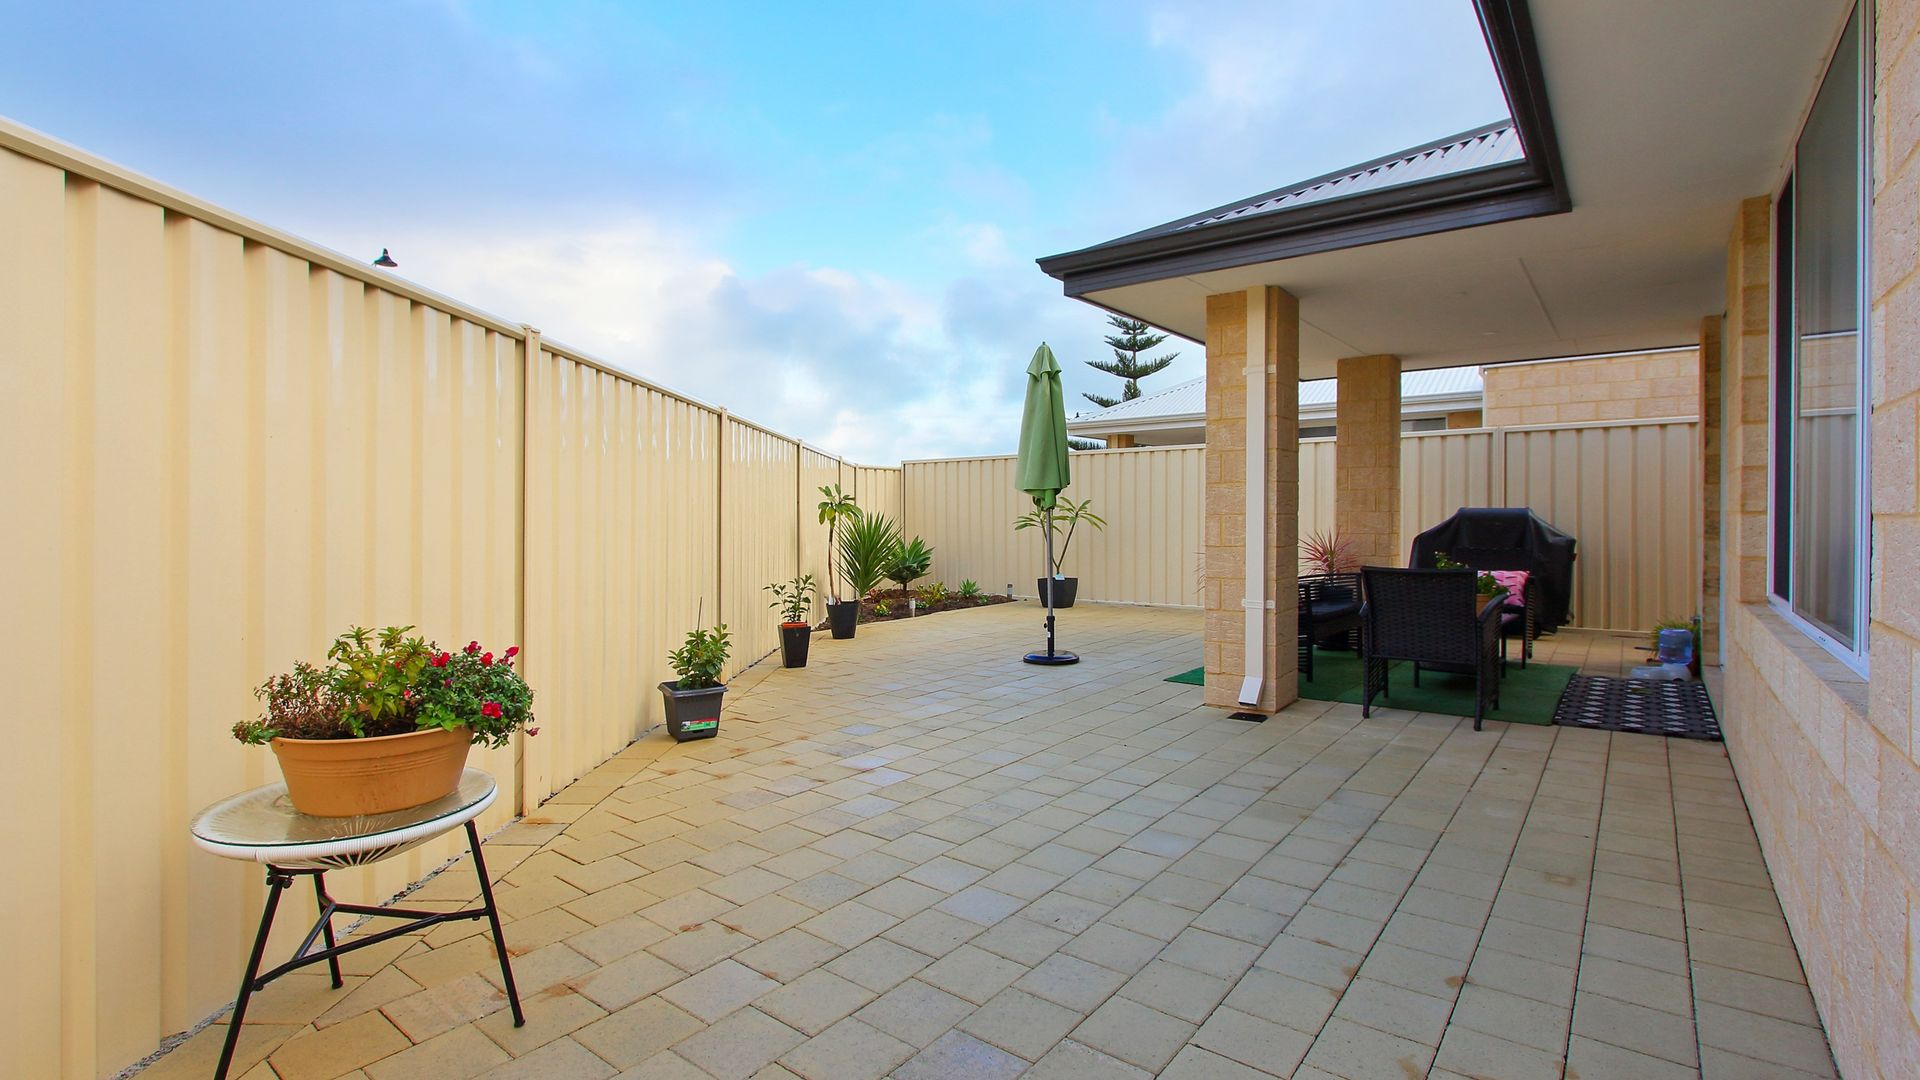 10/6 Chipping Crescent, Butler WA 6036, Image 16